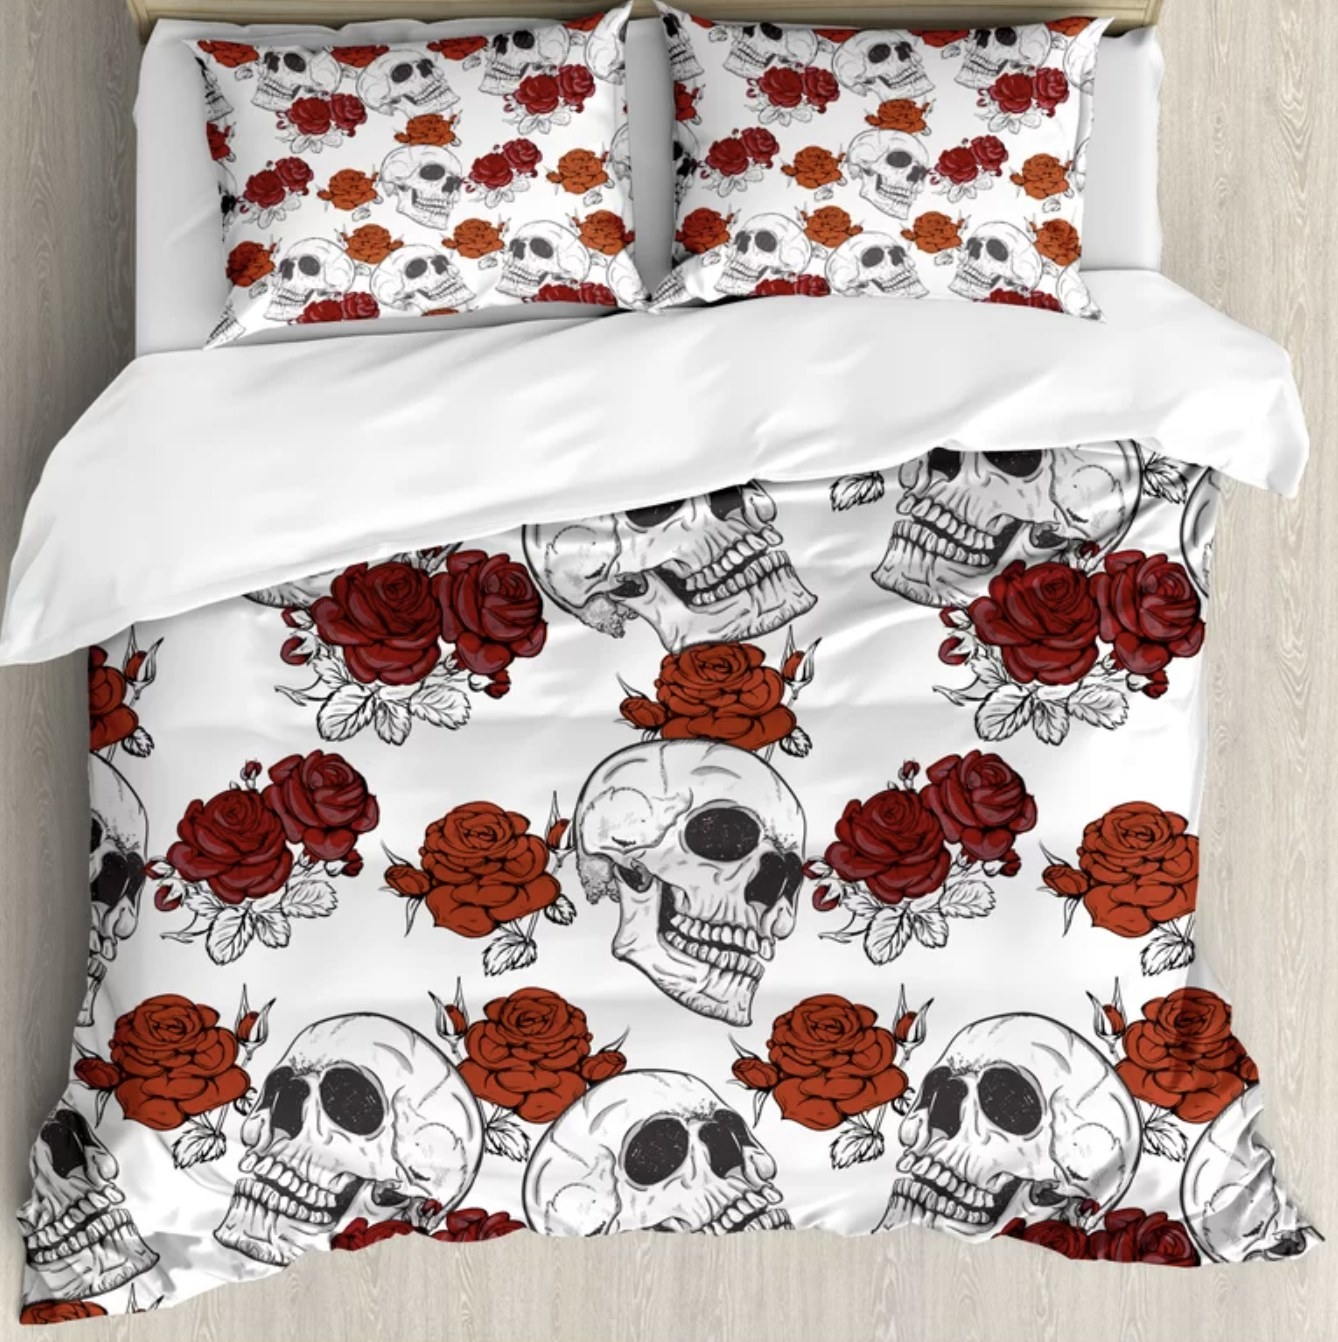 The white pillow shams and duvet covers have large skulls and red roses